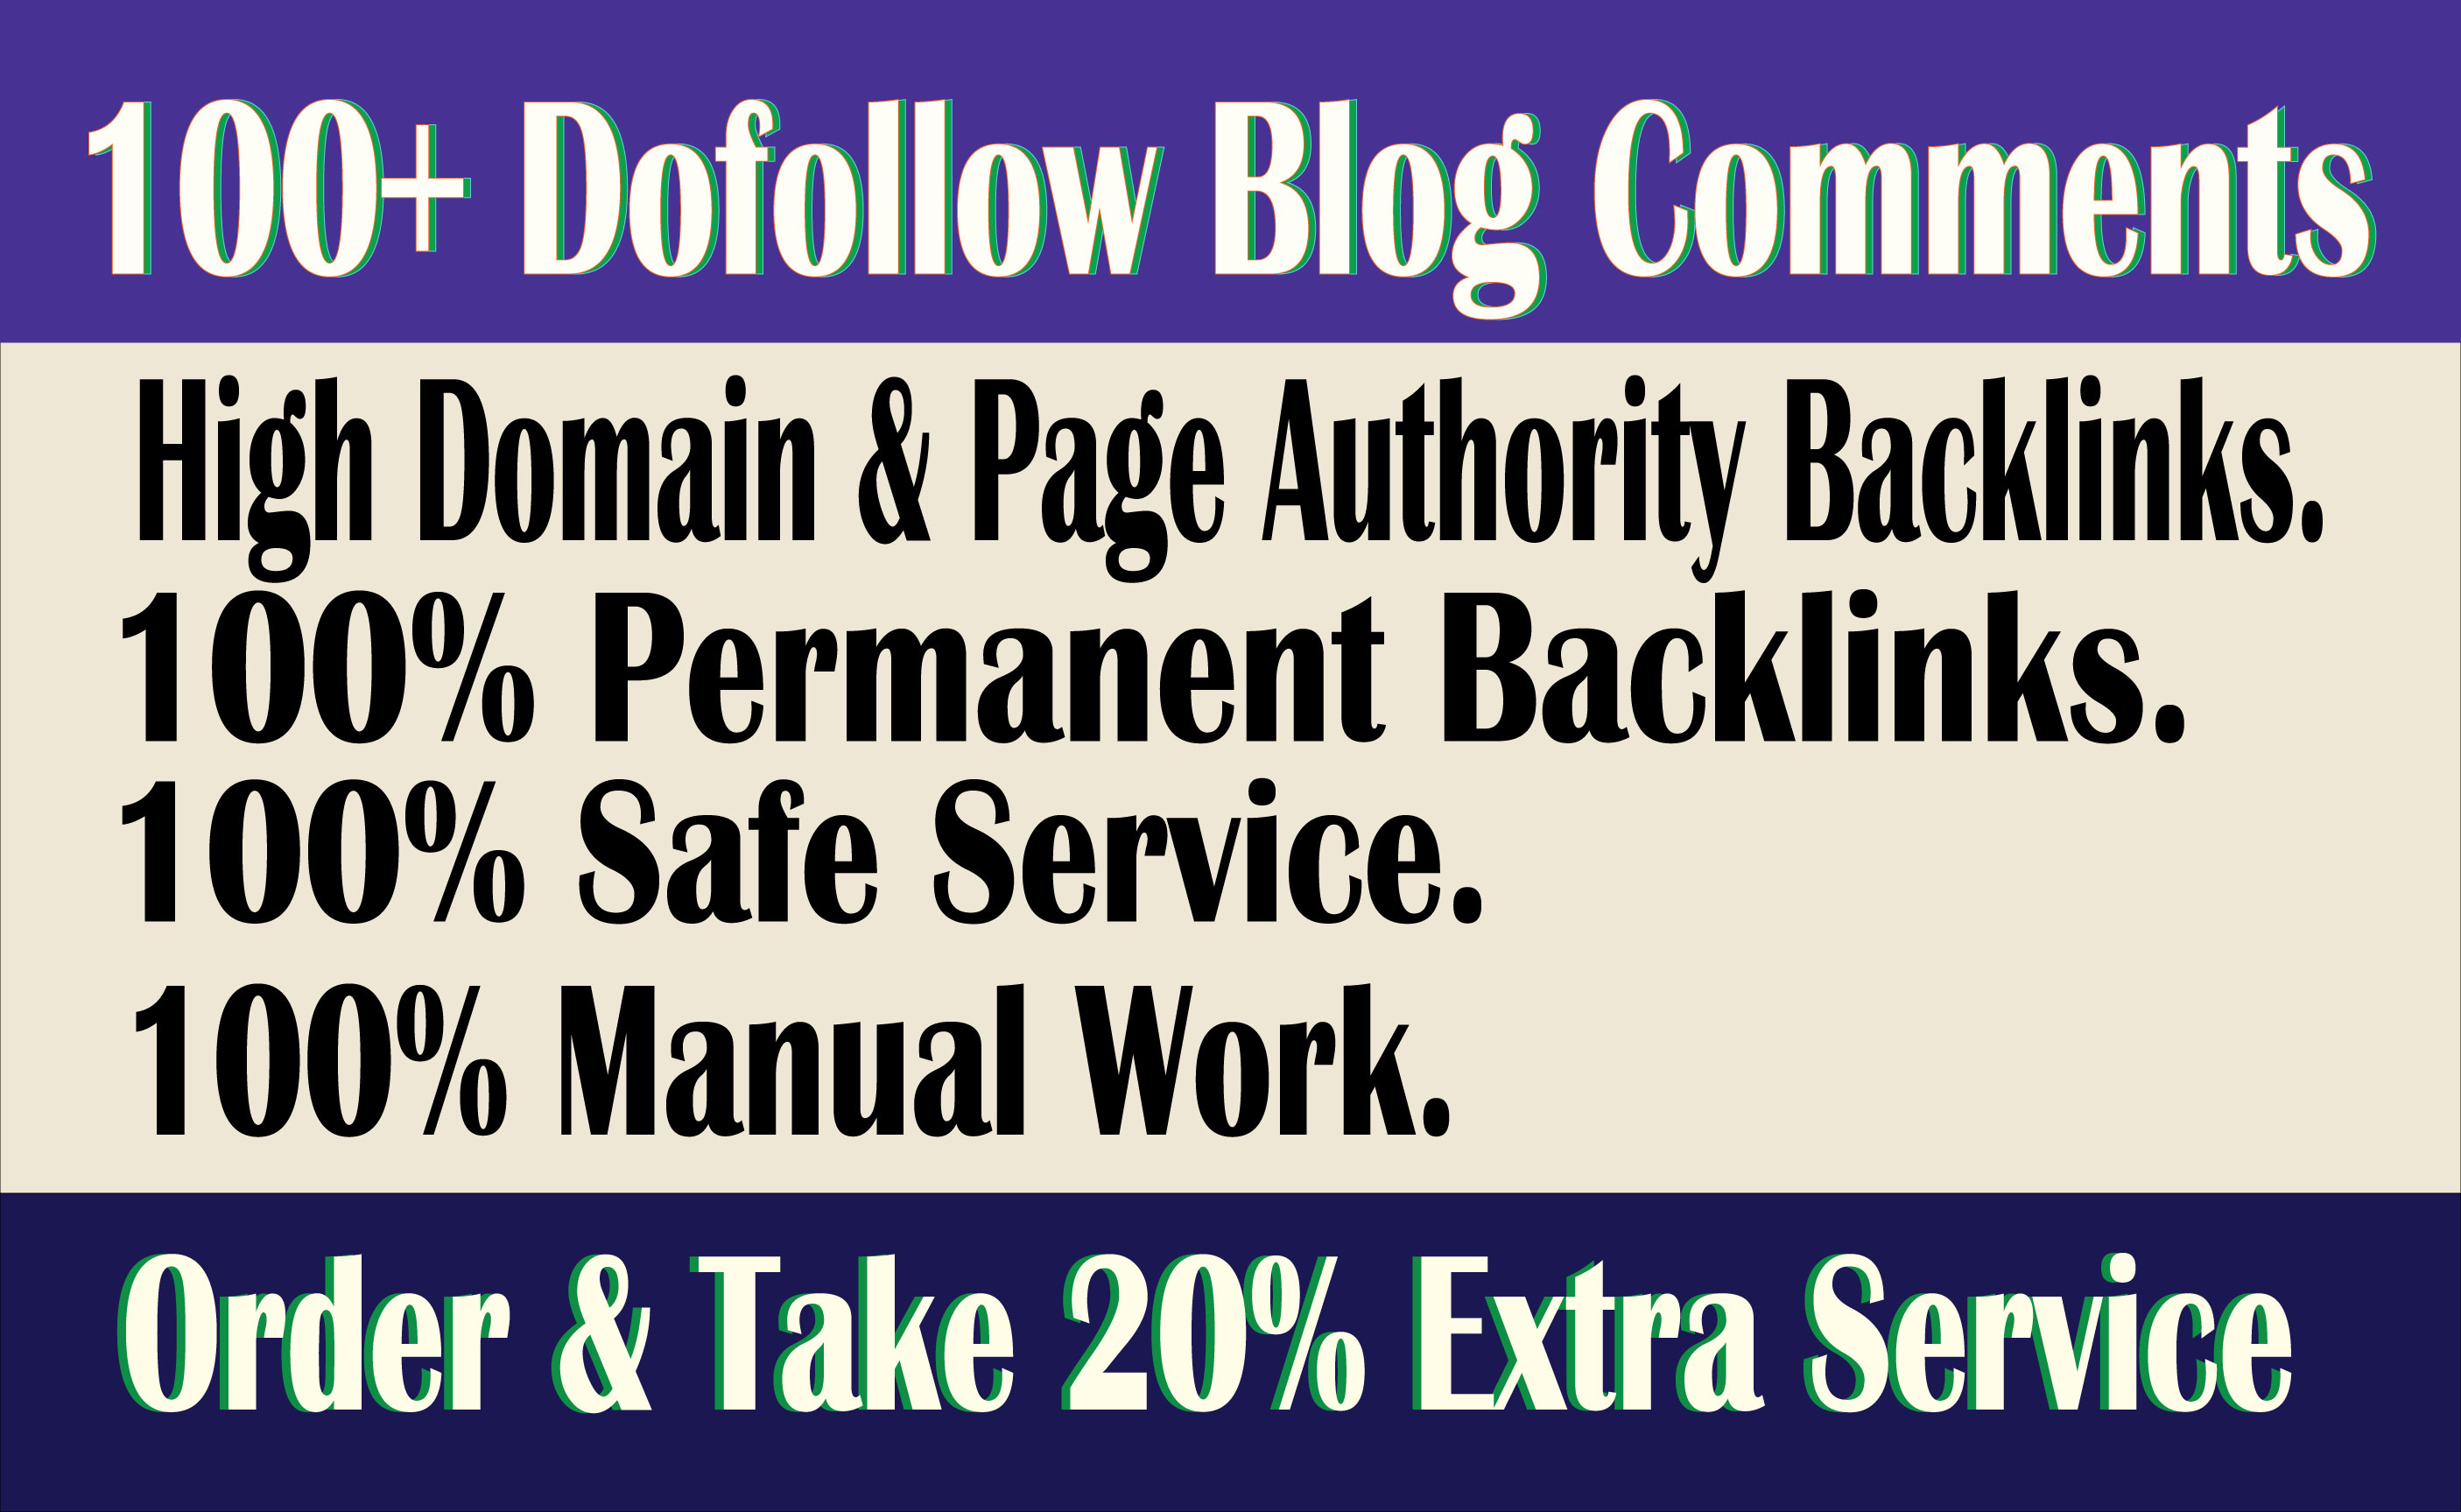 Build High Quality100+ Dofollow Blog Comments Backlinks